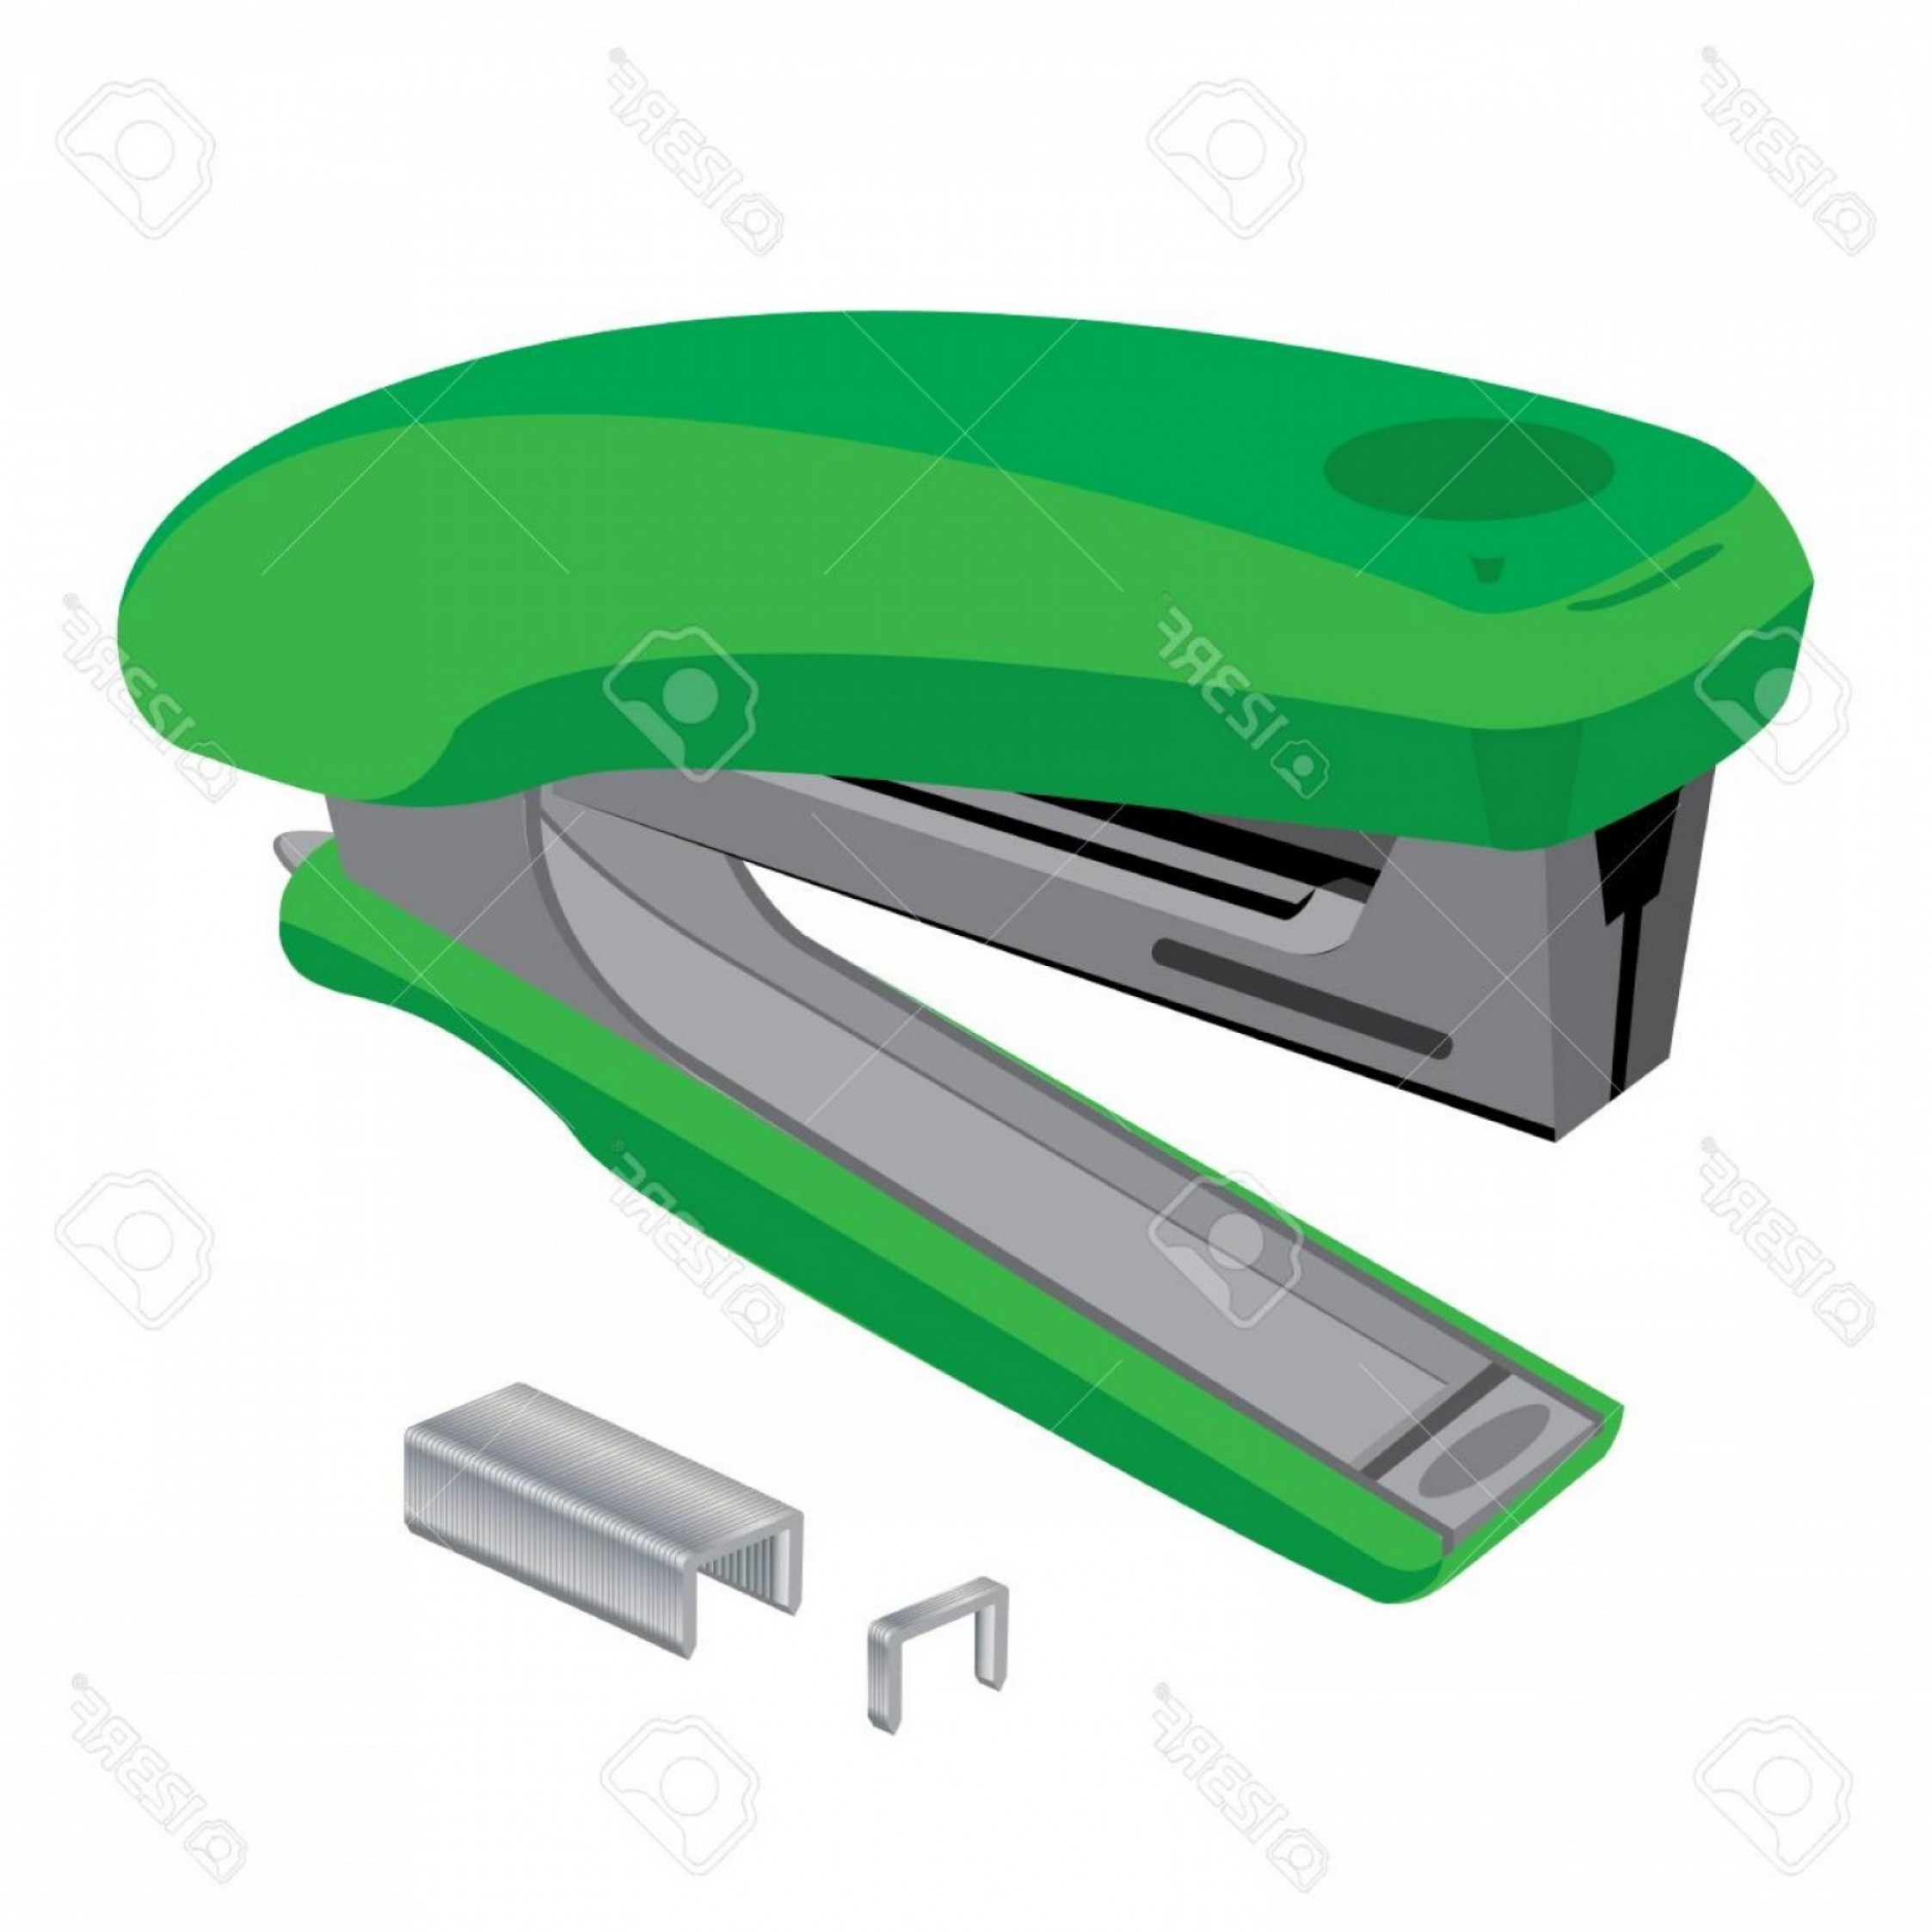 White Staples Vector Logo: Photostock Vector Stapler And Staples Green Stapler And Staples Isolated On White Background